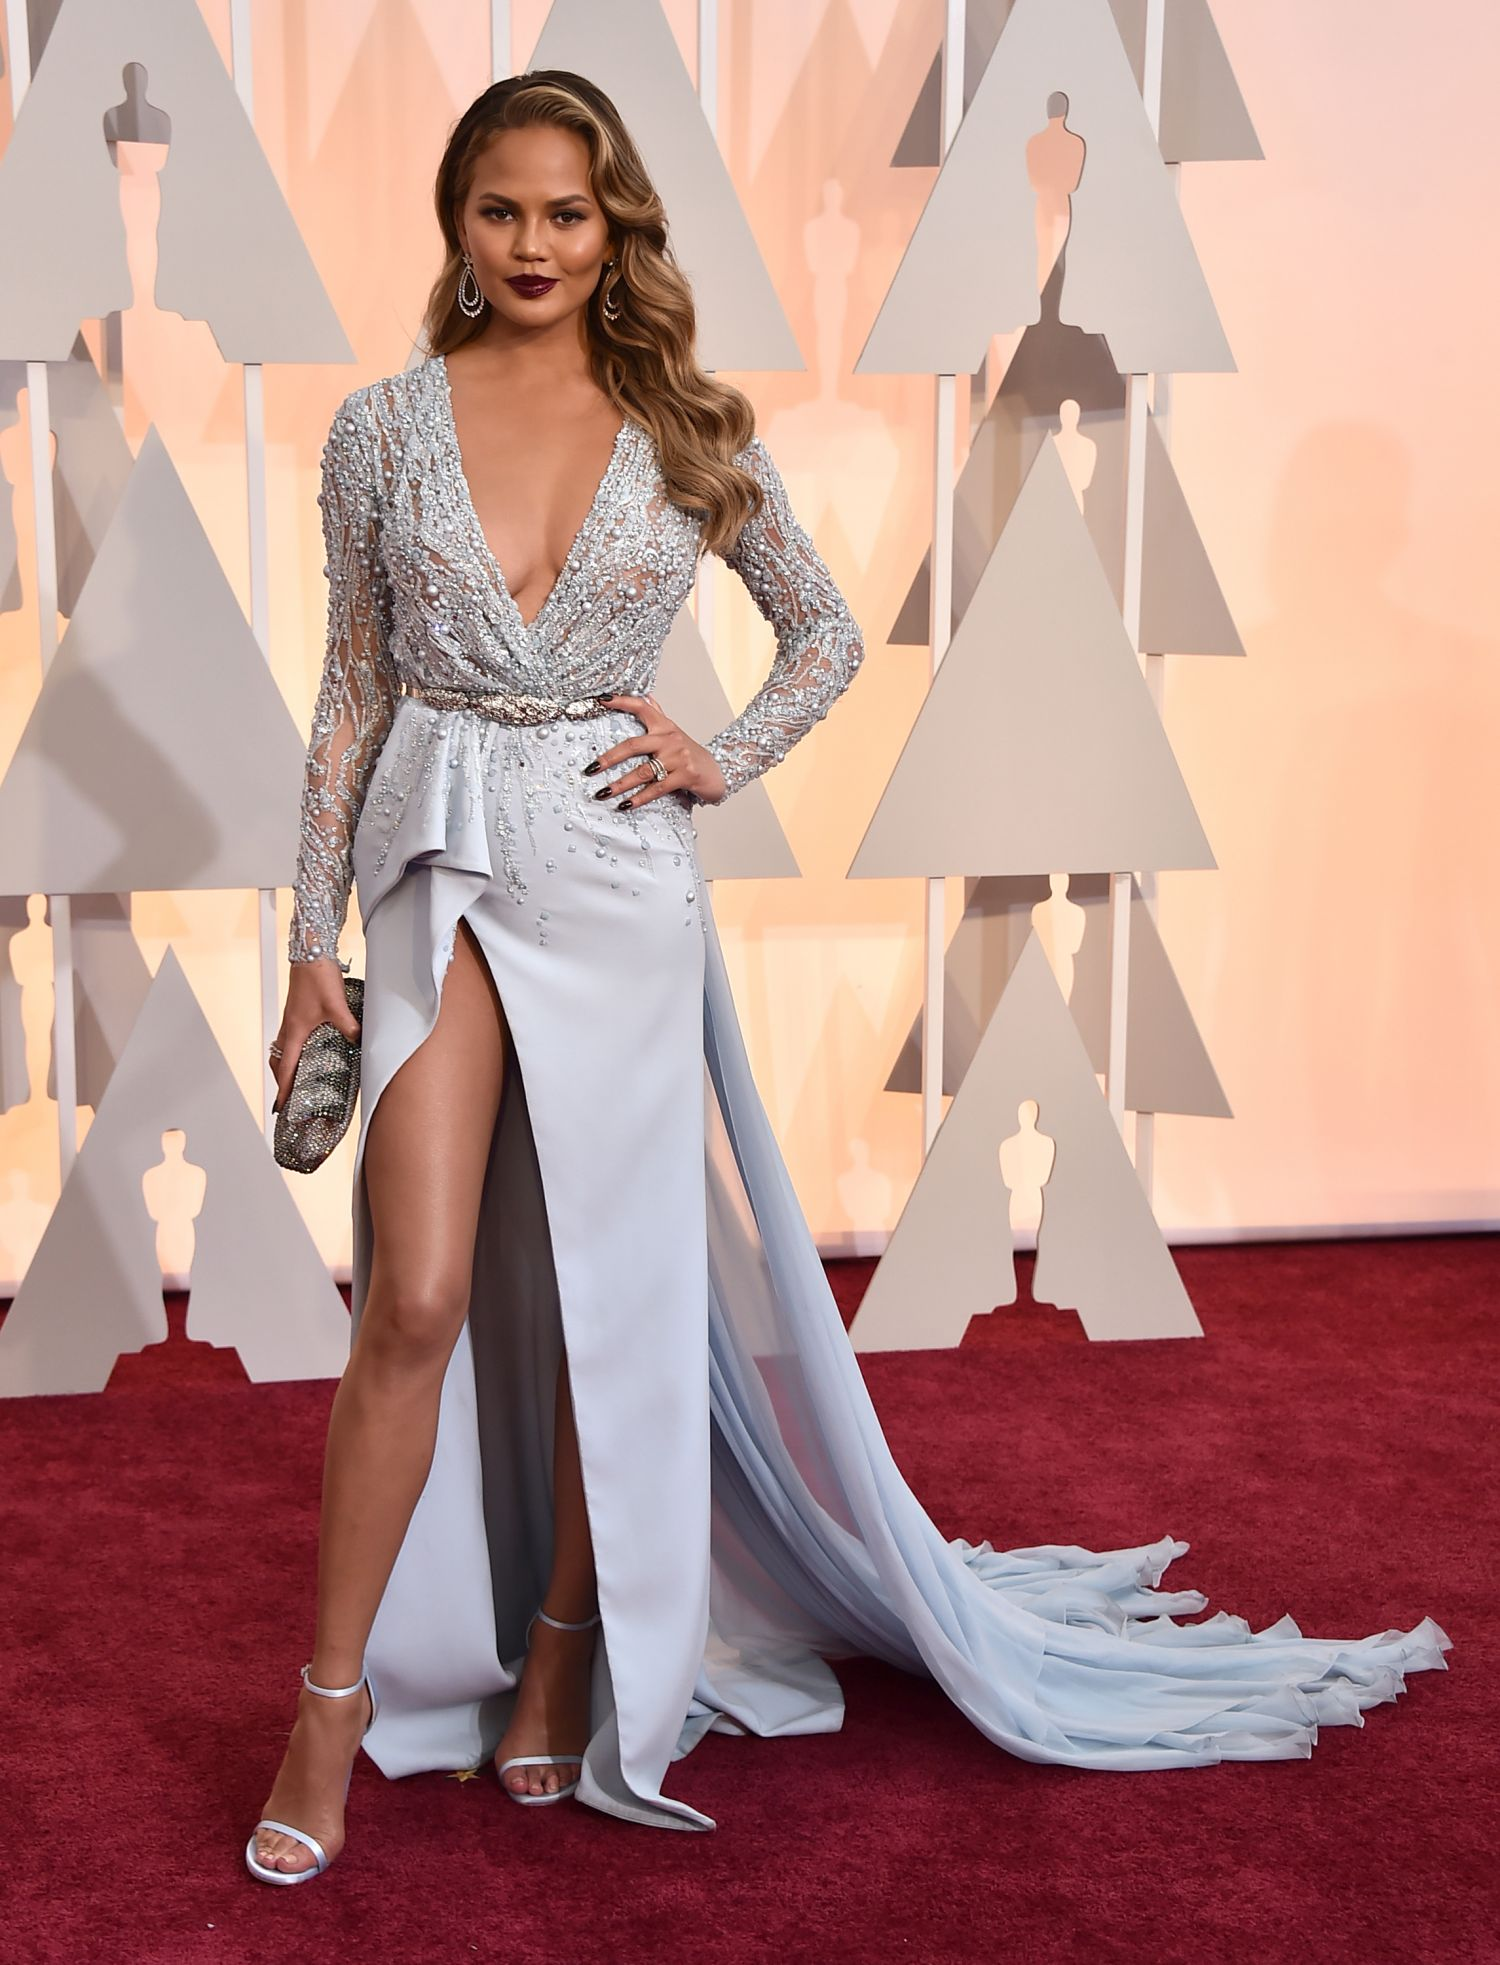 chrissy-teigen-see-through-at-the-oscars-2